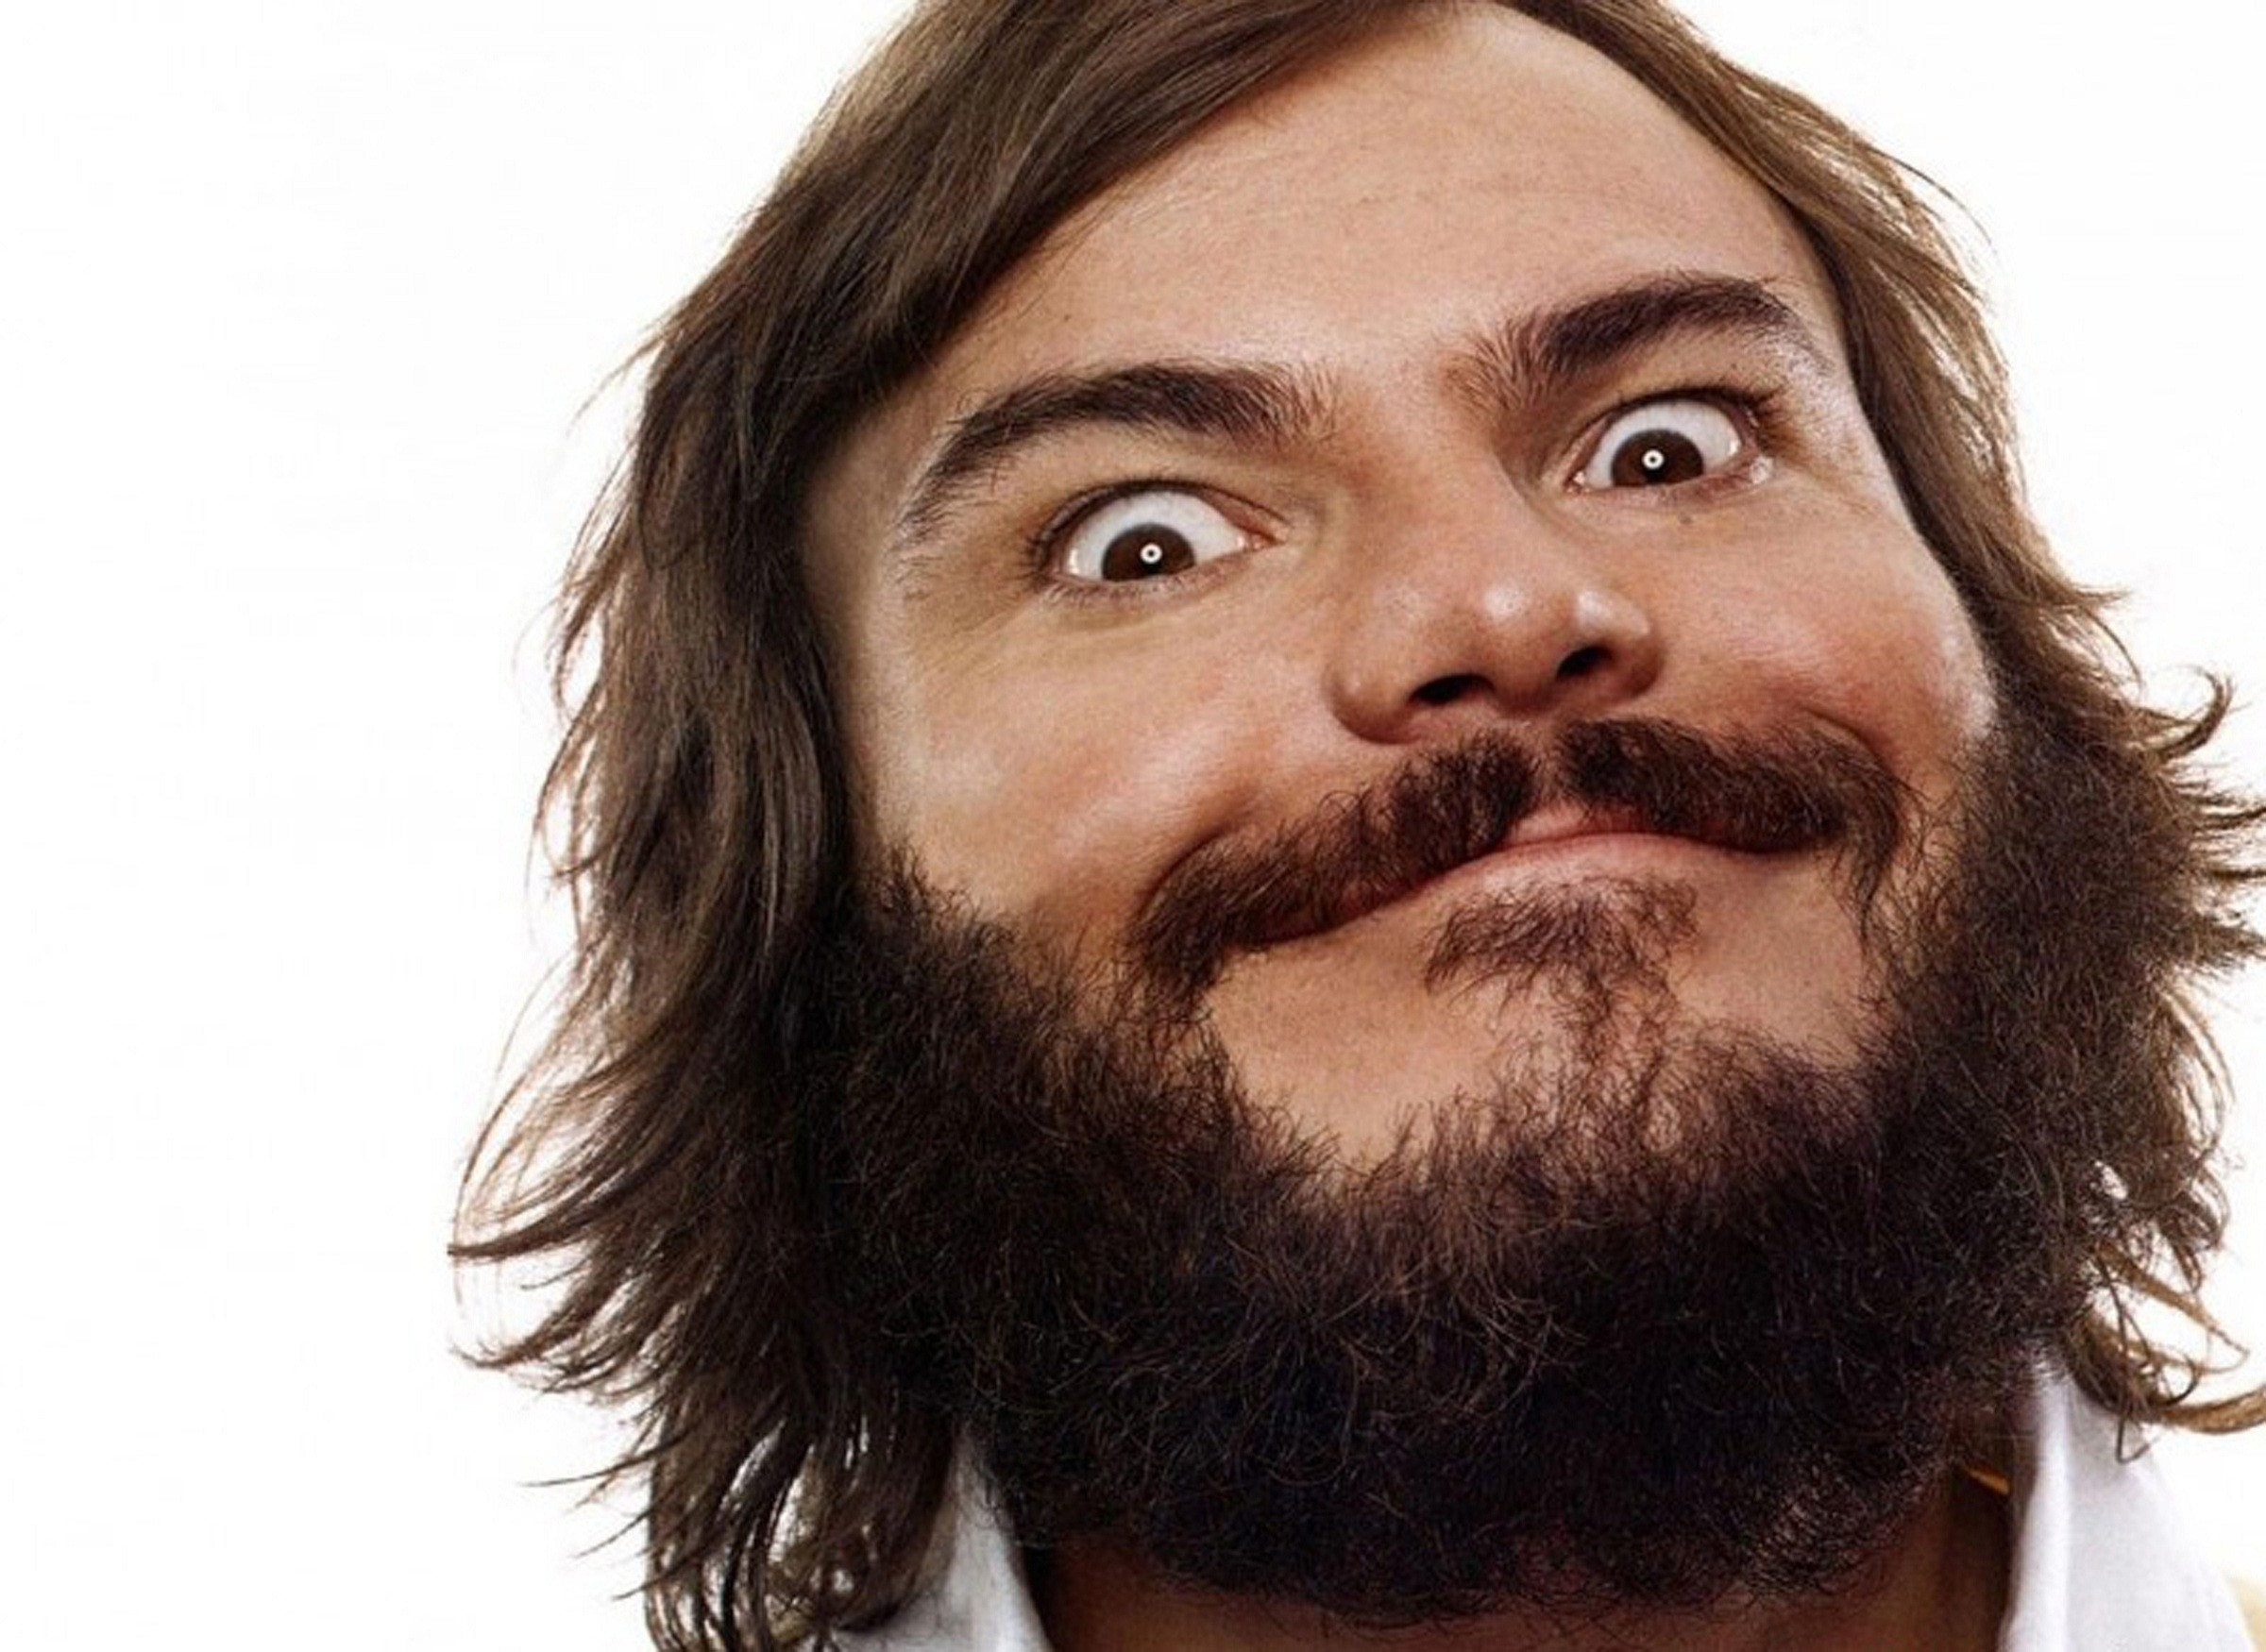 Jack black crazy beard hd wallpaper hd wallpapers - High resolution wallpaper celebrity ...